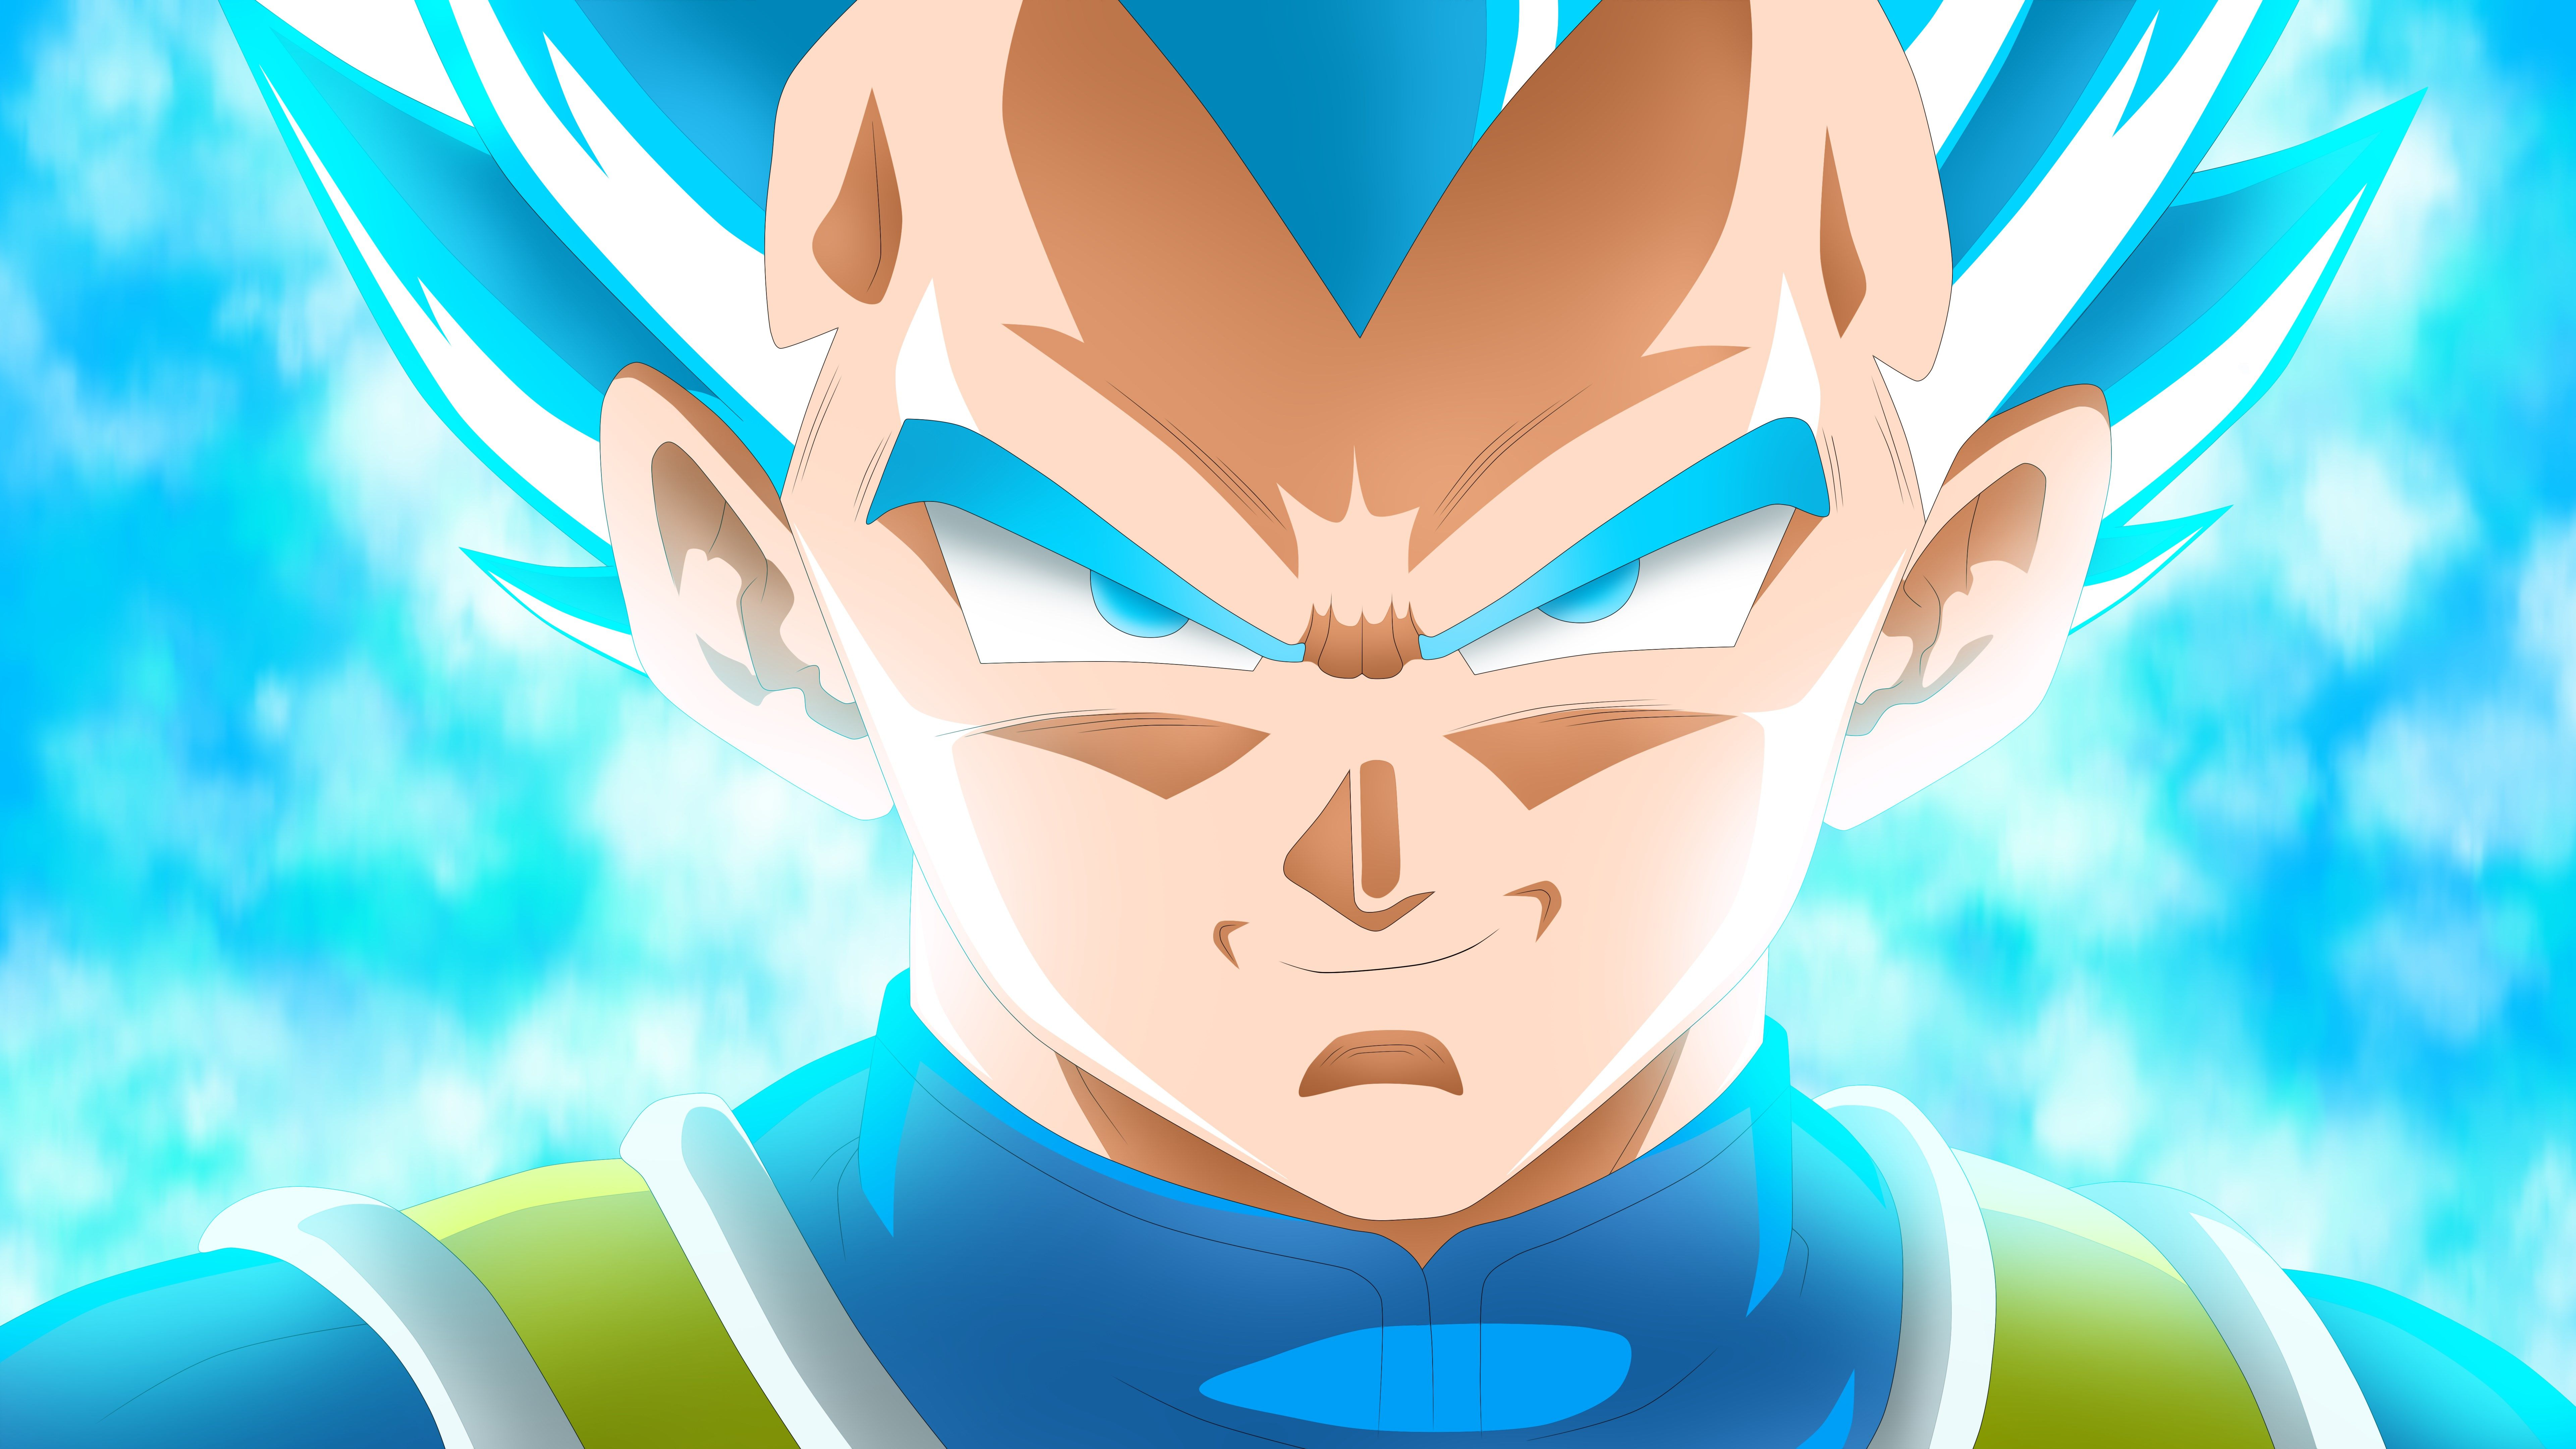 Anime Dragon Ball Goku Piccolo Hd Anime 4k Wallpapers Images Backgrounds Photos And Pictures